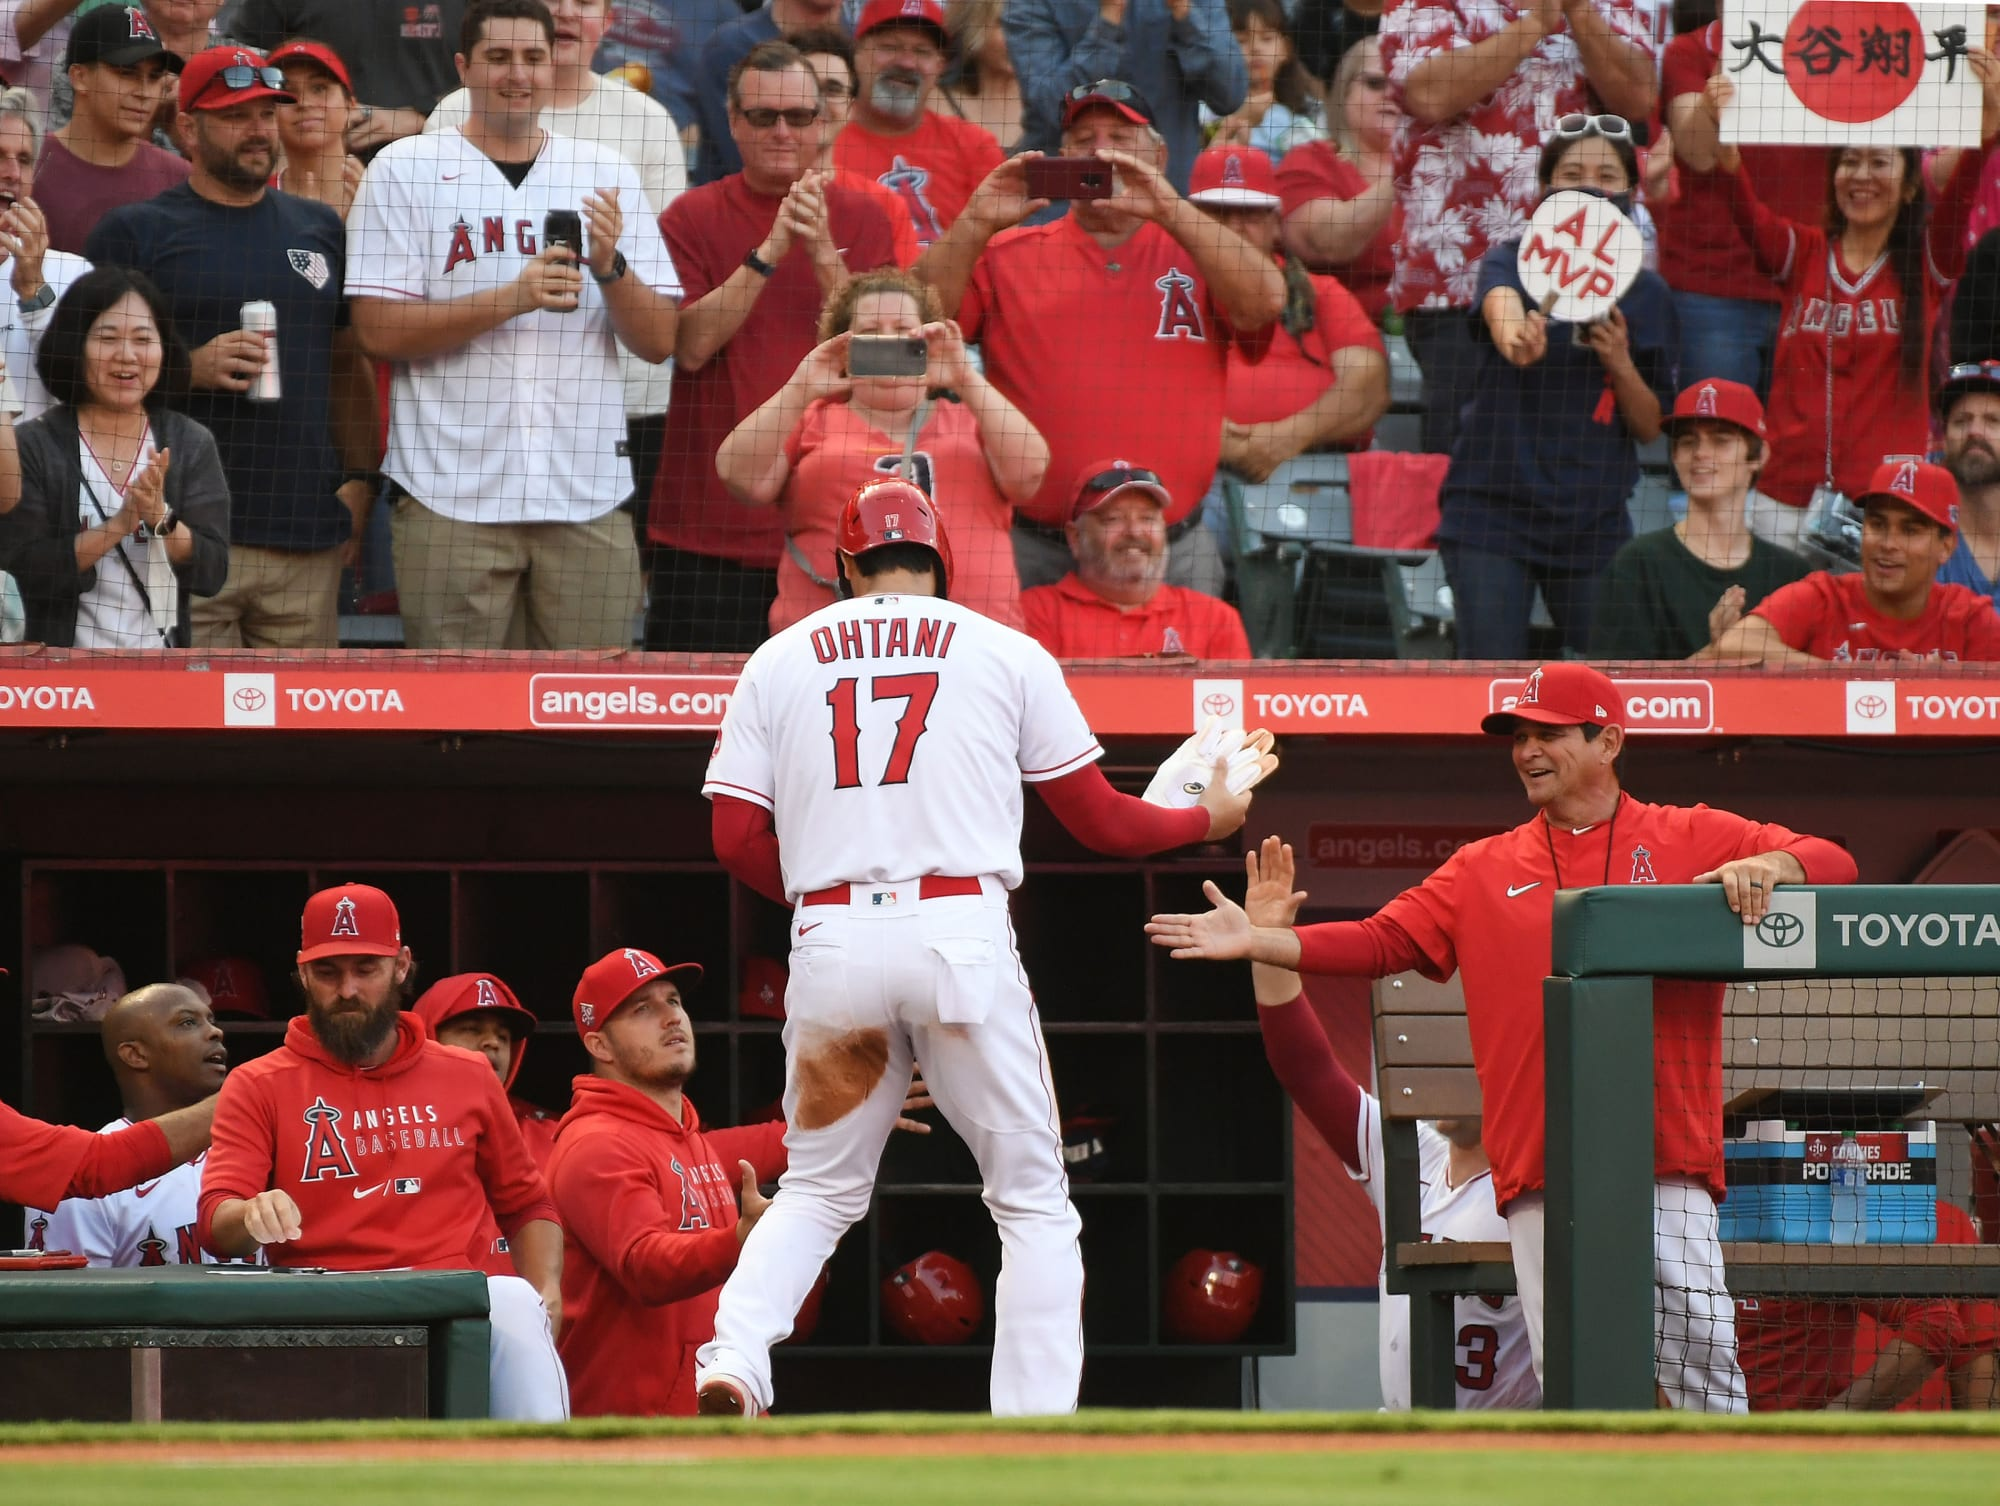 Shohei Ohtani's first inning feat cemented status as most complete player